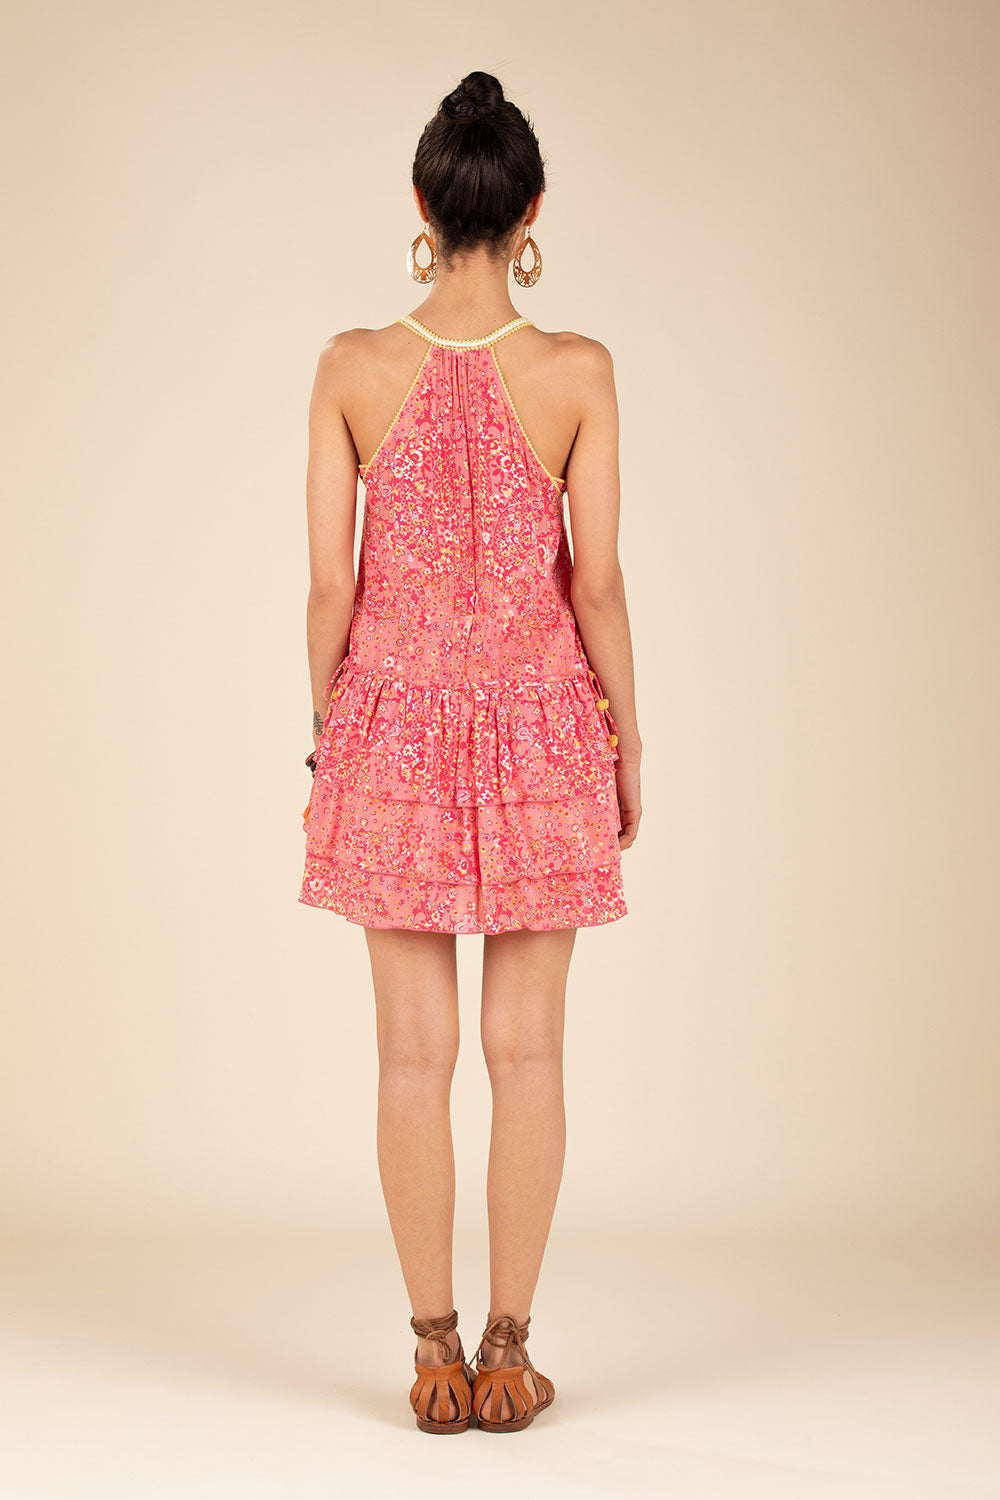 Mini Dress Bety Ruffled - Pink Paisley